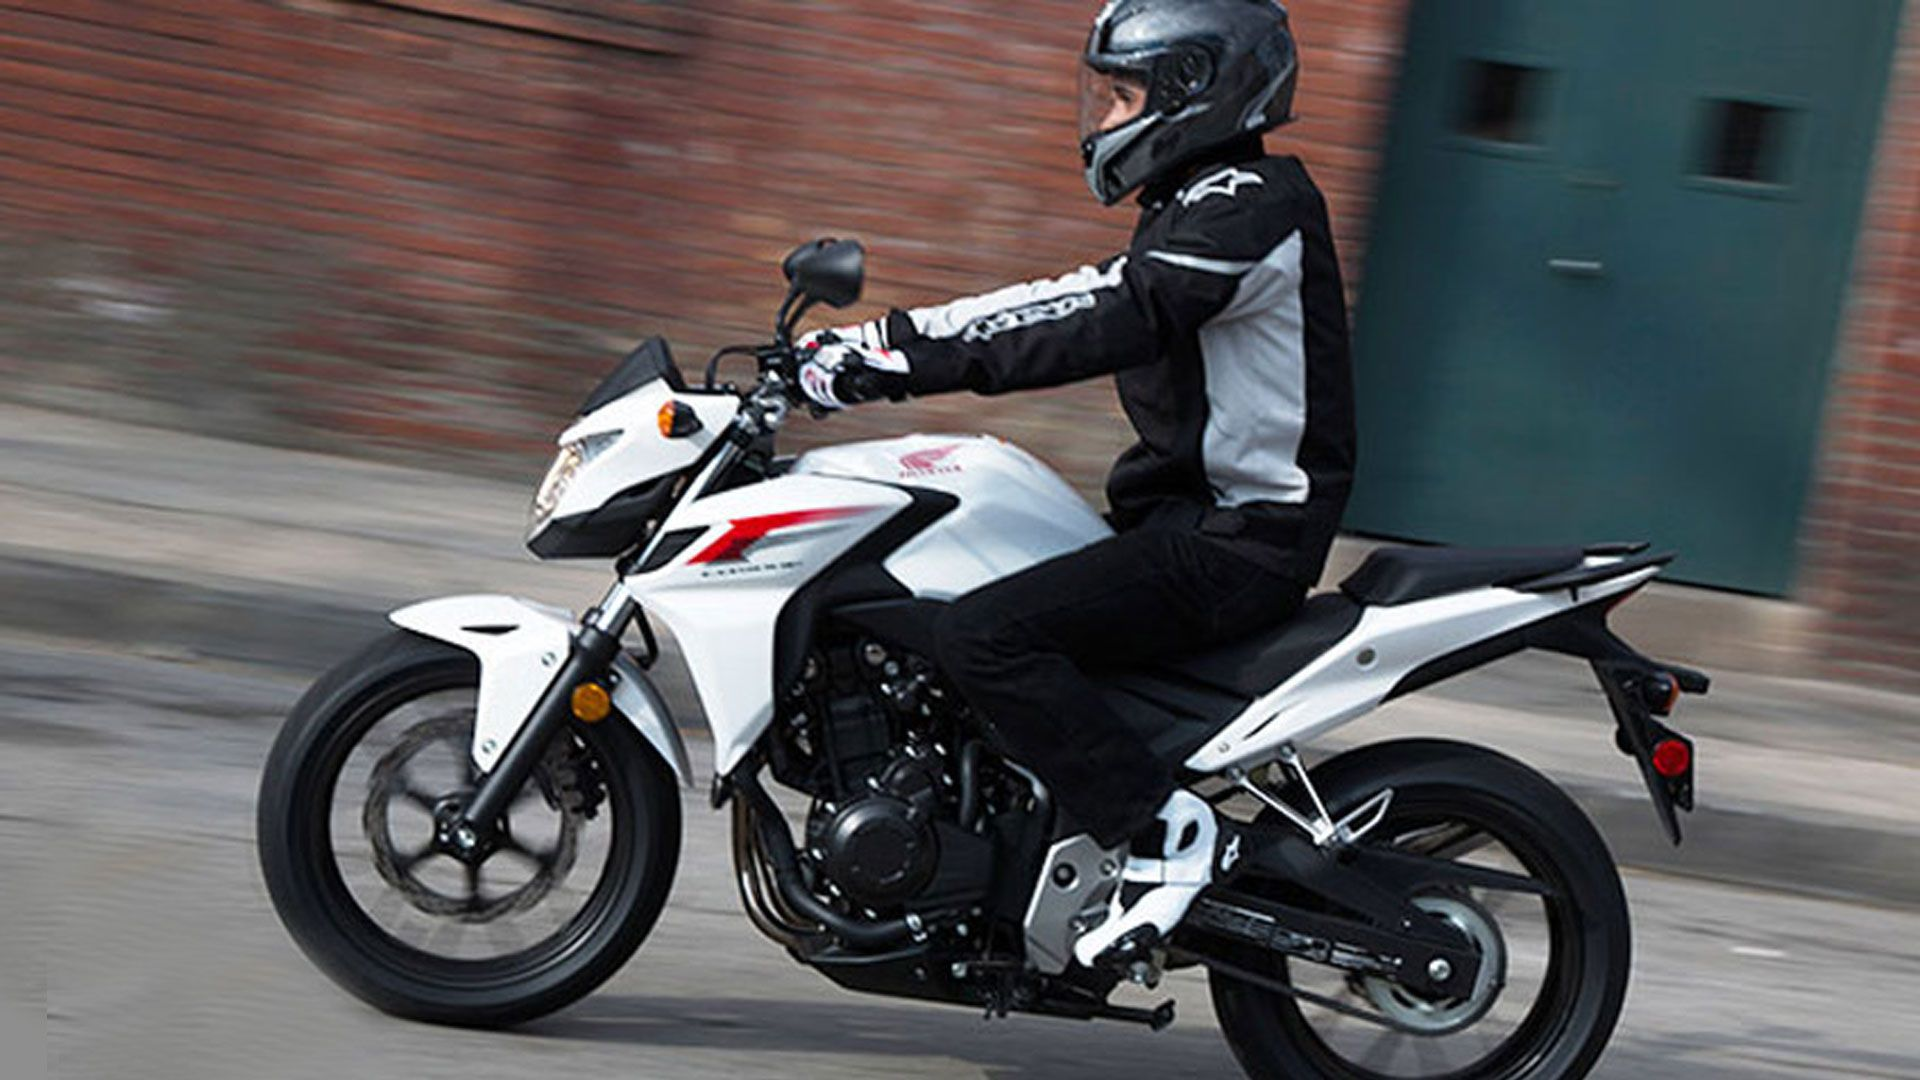 Wallpapers Honda CB500F 2014 ABS Full Review And Price